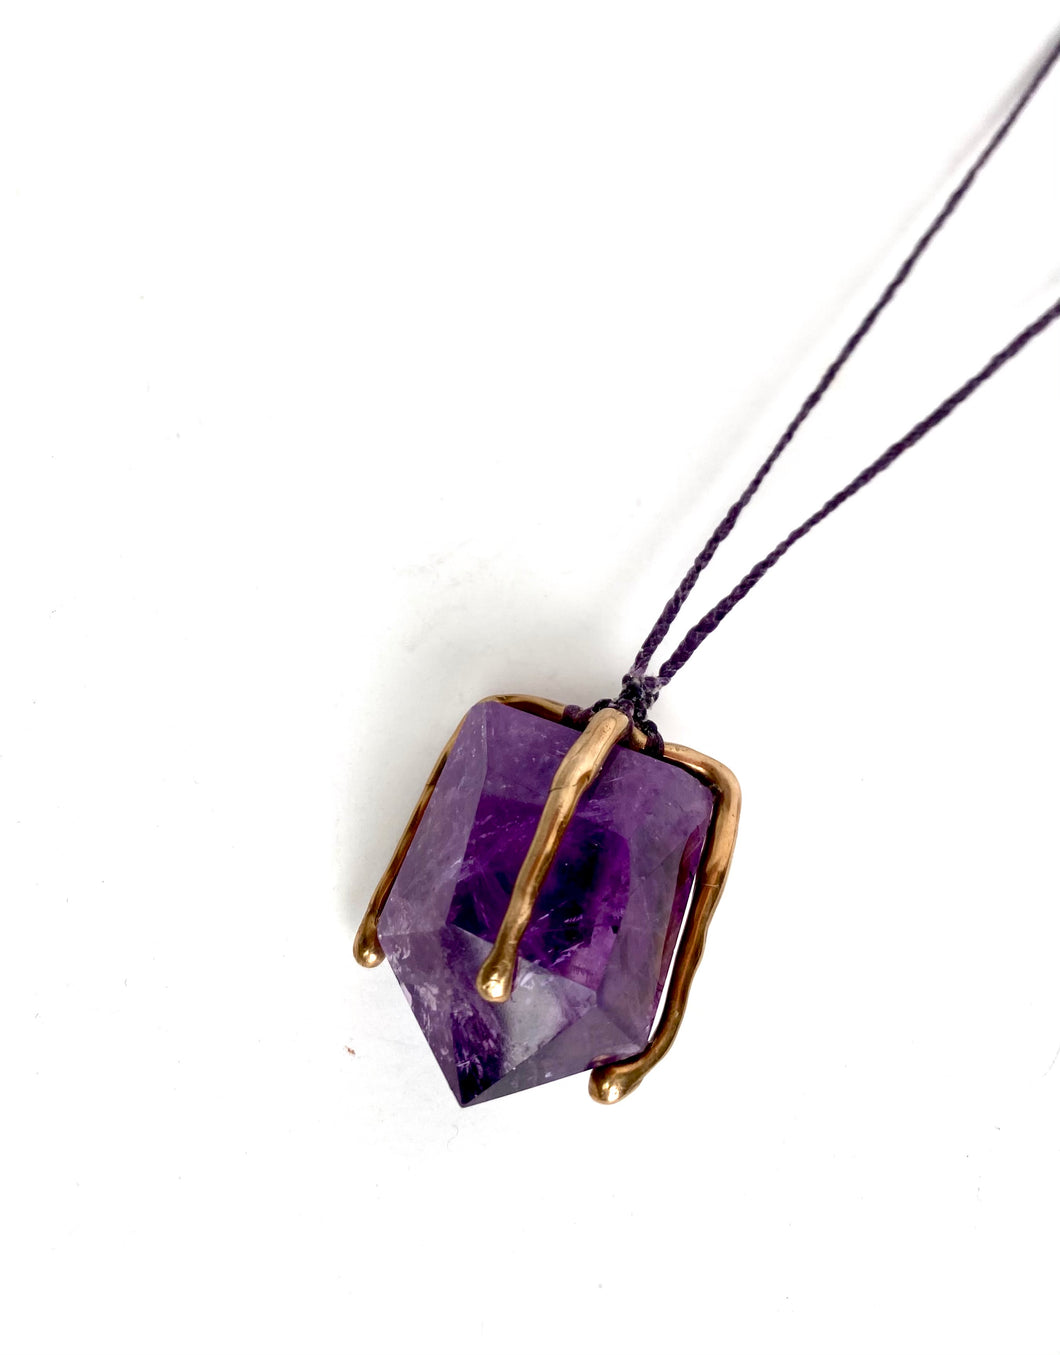 Amethyst crystal caged in bronze